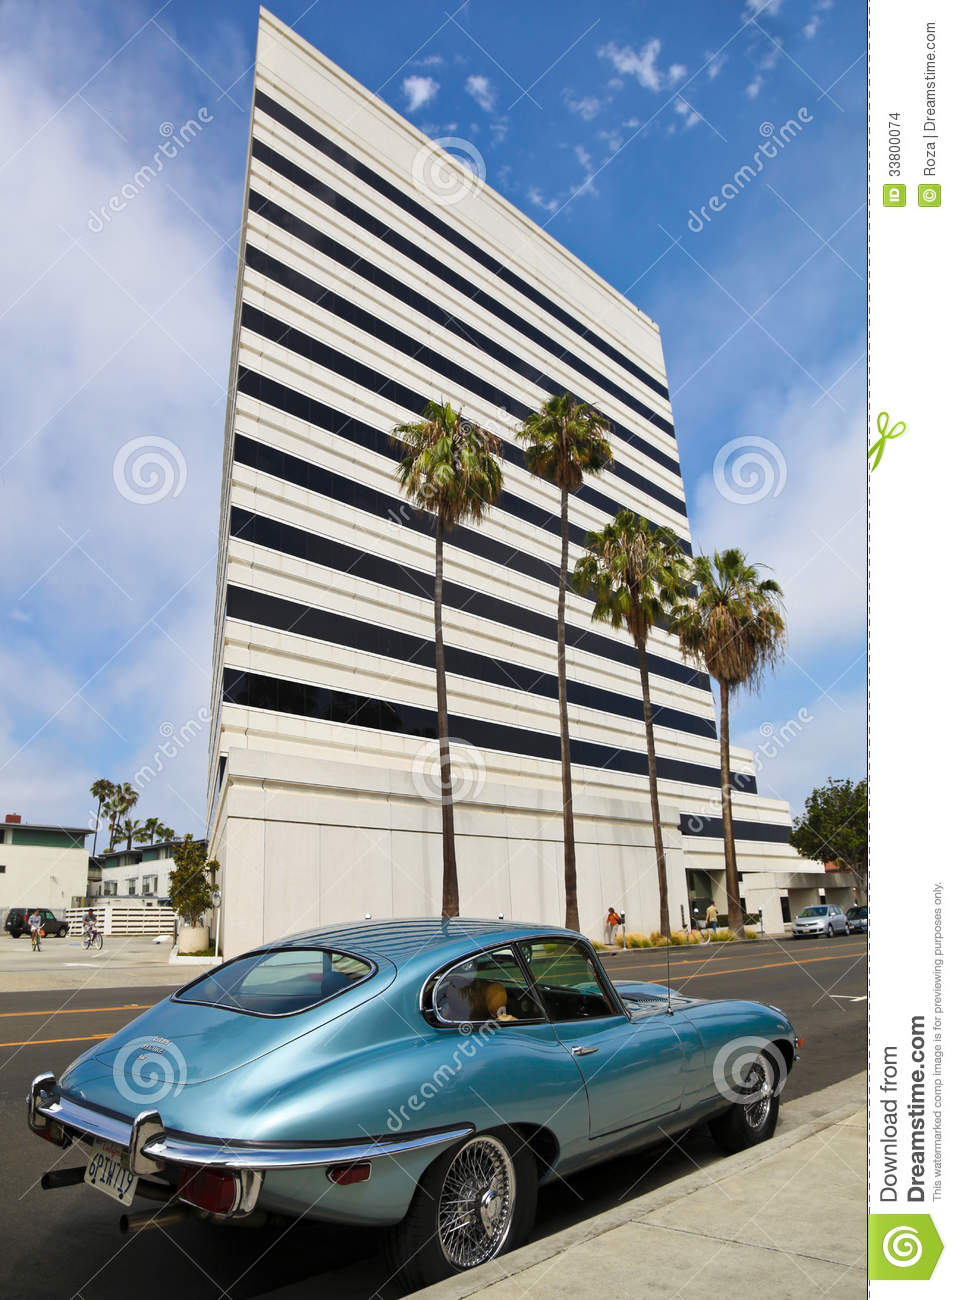 Oude klassieke auto jaguar redactionele stock afbeelding for Major motors santa monica